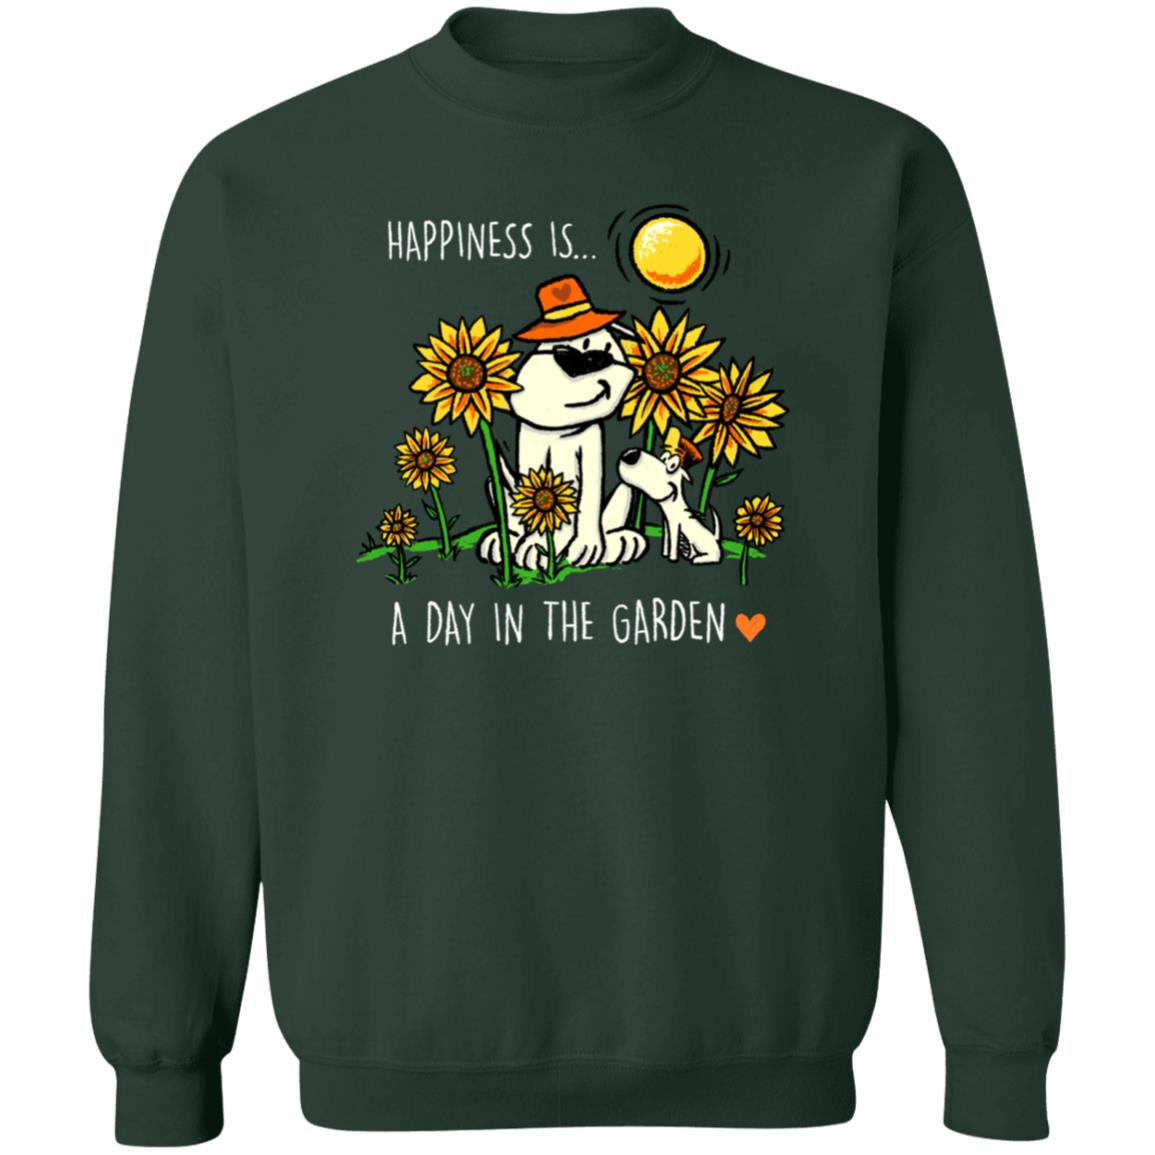 Happiness Is A Day In The Garden Sweatshirt Green 🐾  Deal Up To 25% Off!